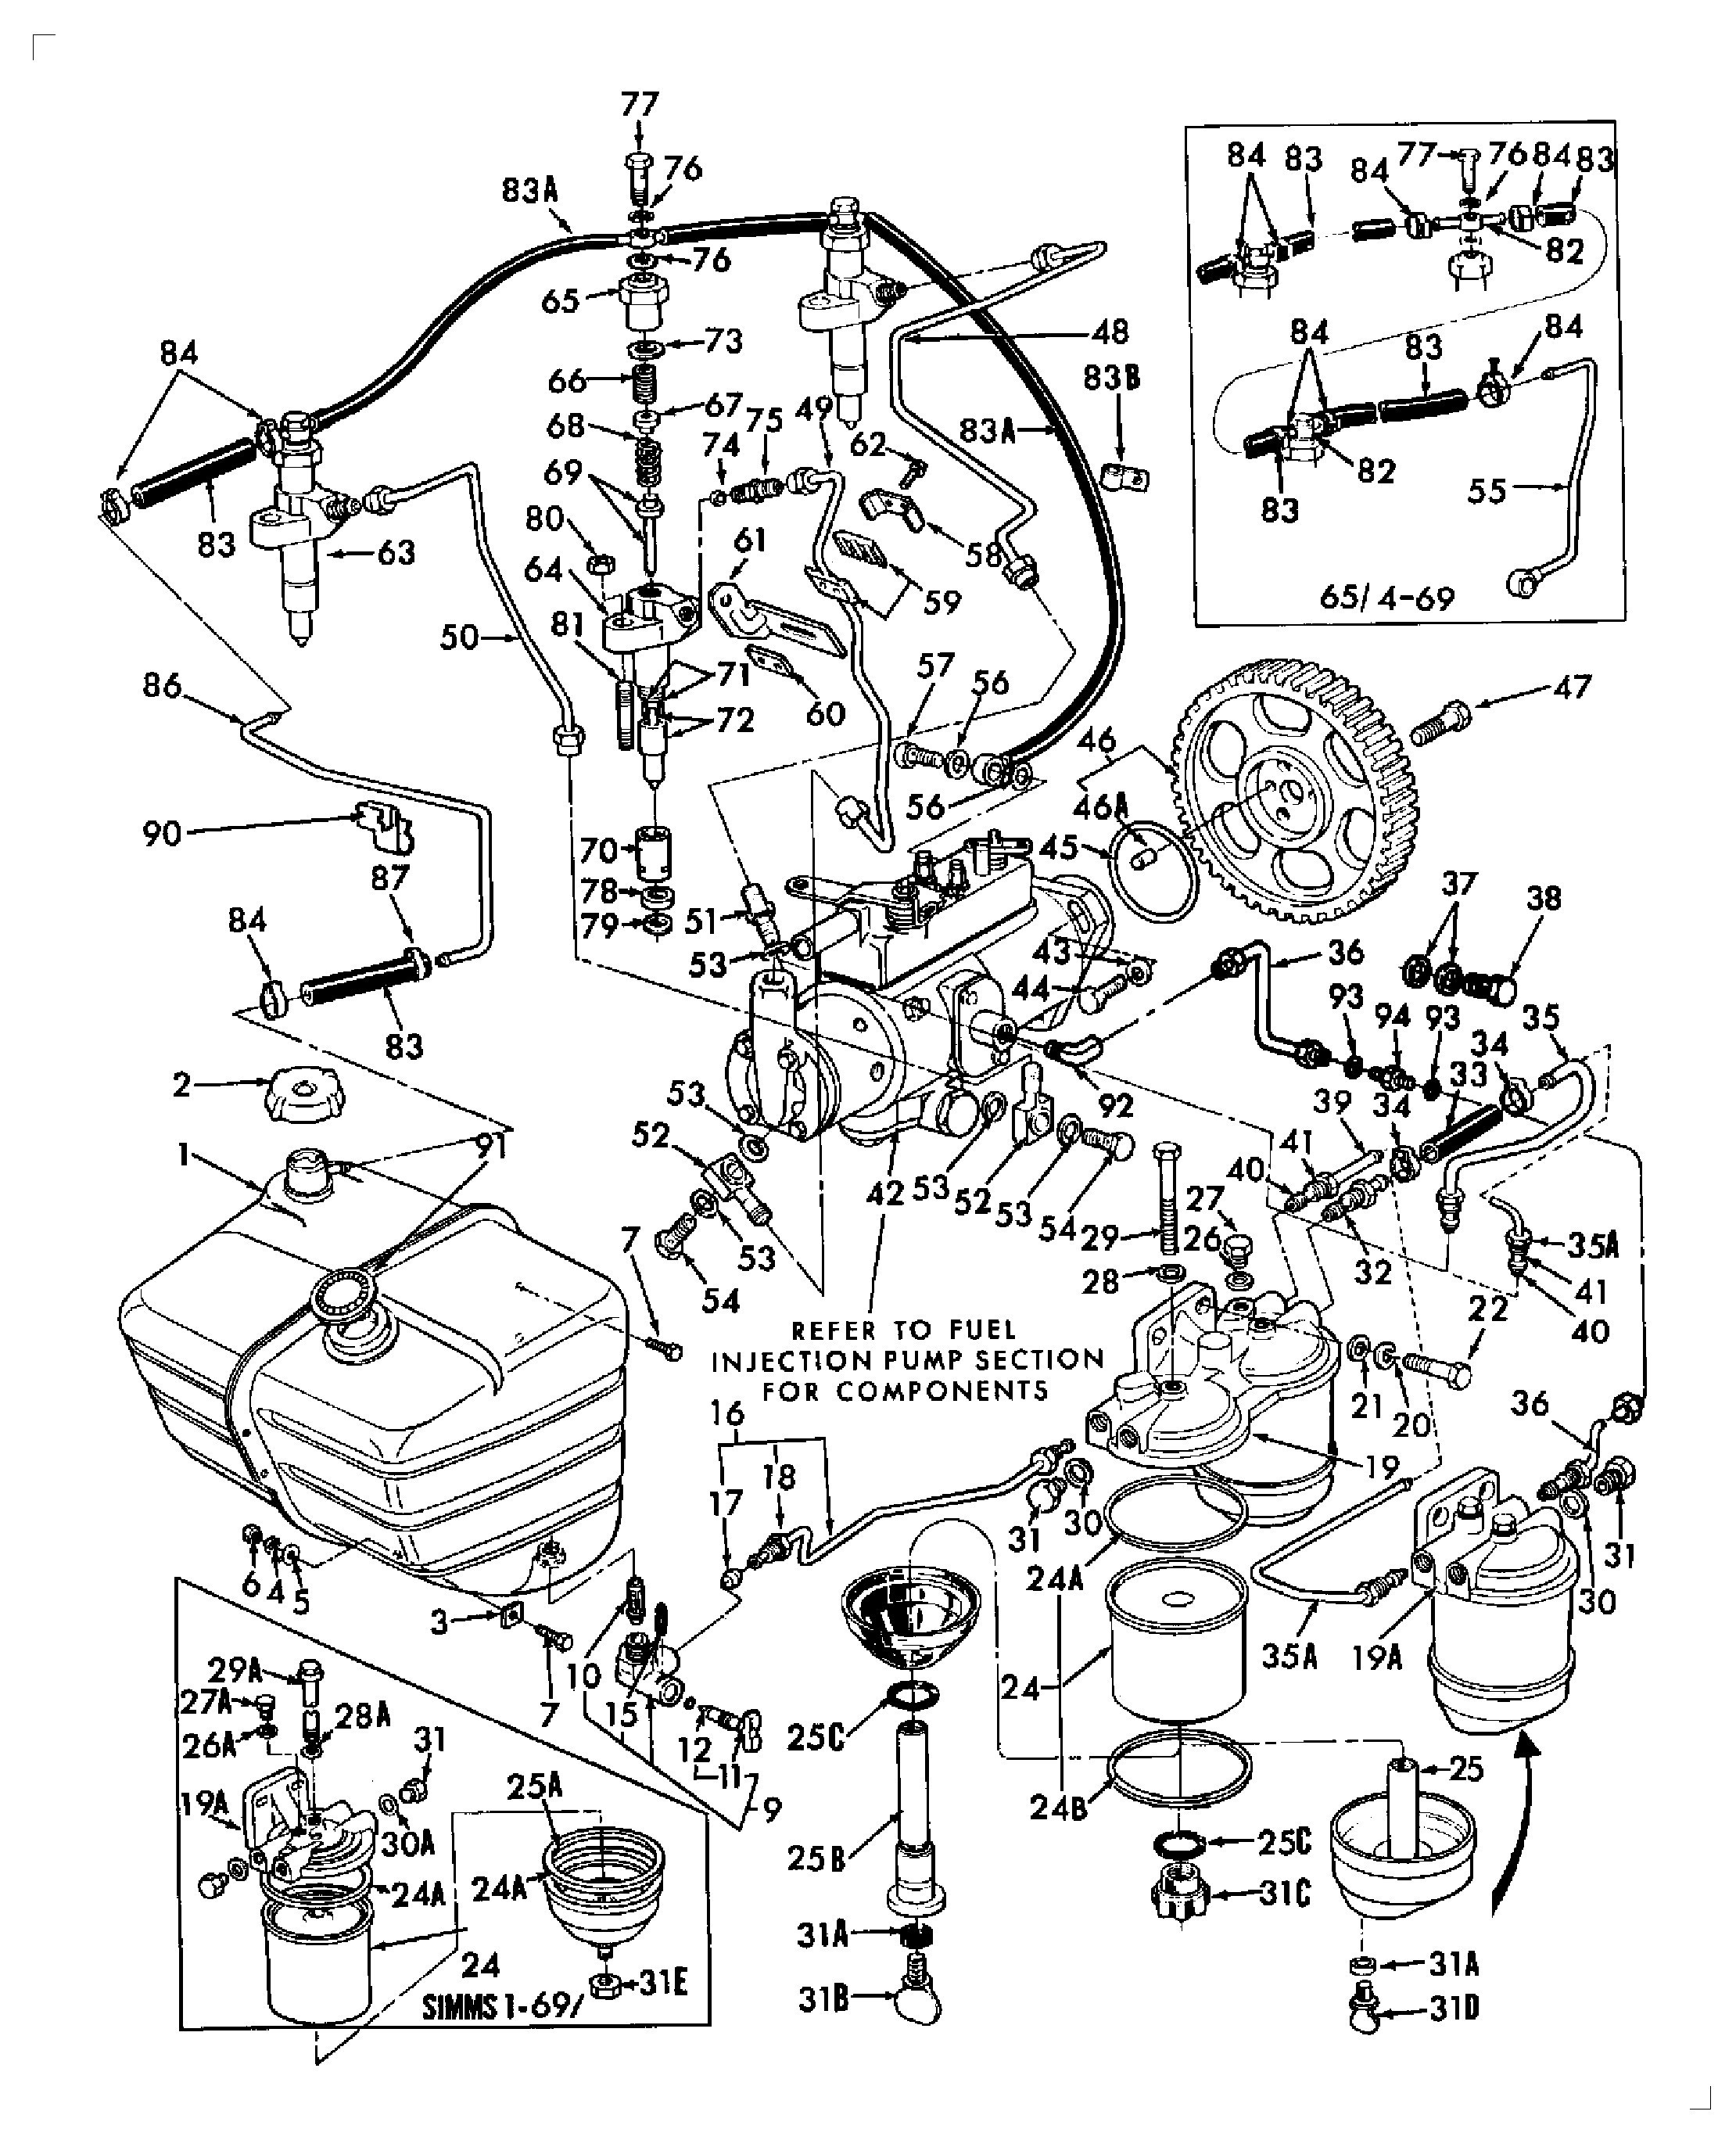 40 Hp Evinrude Parts Diagram 25 Hp Johnson Wiring Diagram Pull Start Wiring Wiring Diagrams Of 40 Hp Evinrude Parts Diagram